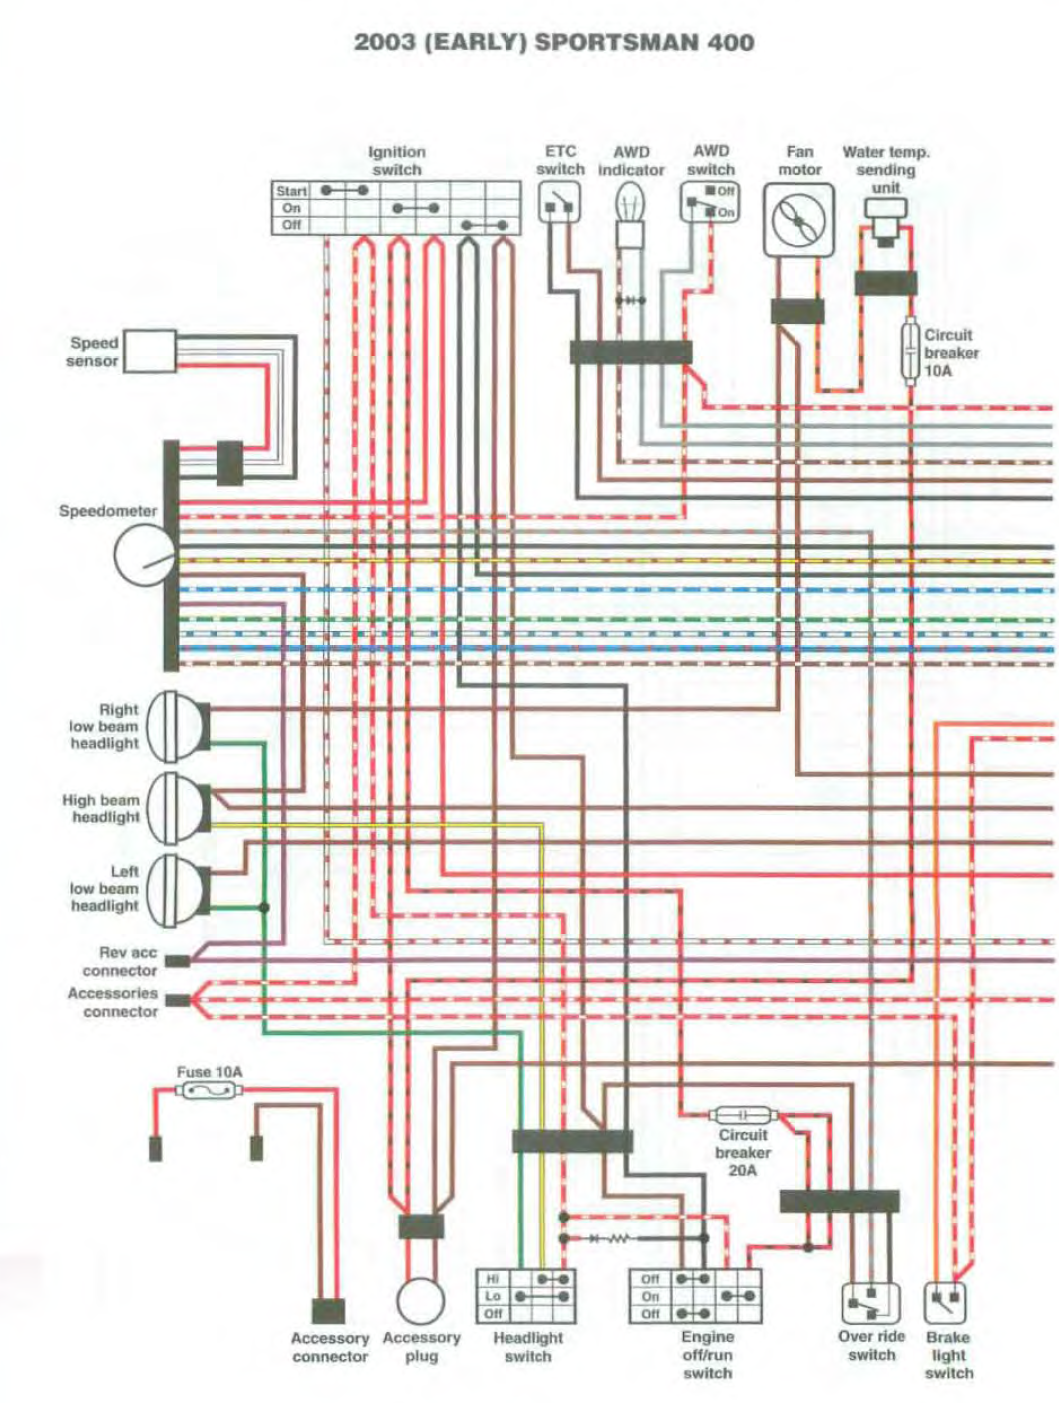 [SCHEMATICS_4LK]  Sportsman 500 wiring diagram | Polaris ATV Forum | Wiring Diagram Polaris 2005 500 Ho |  | Polaris ATV Forum